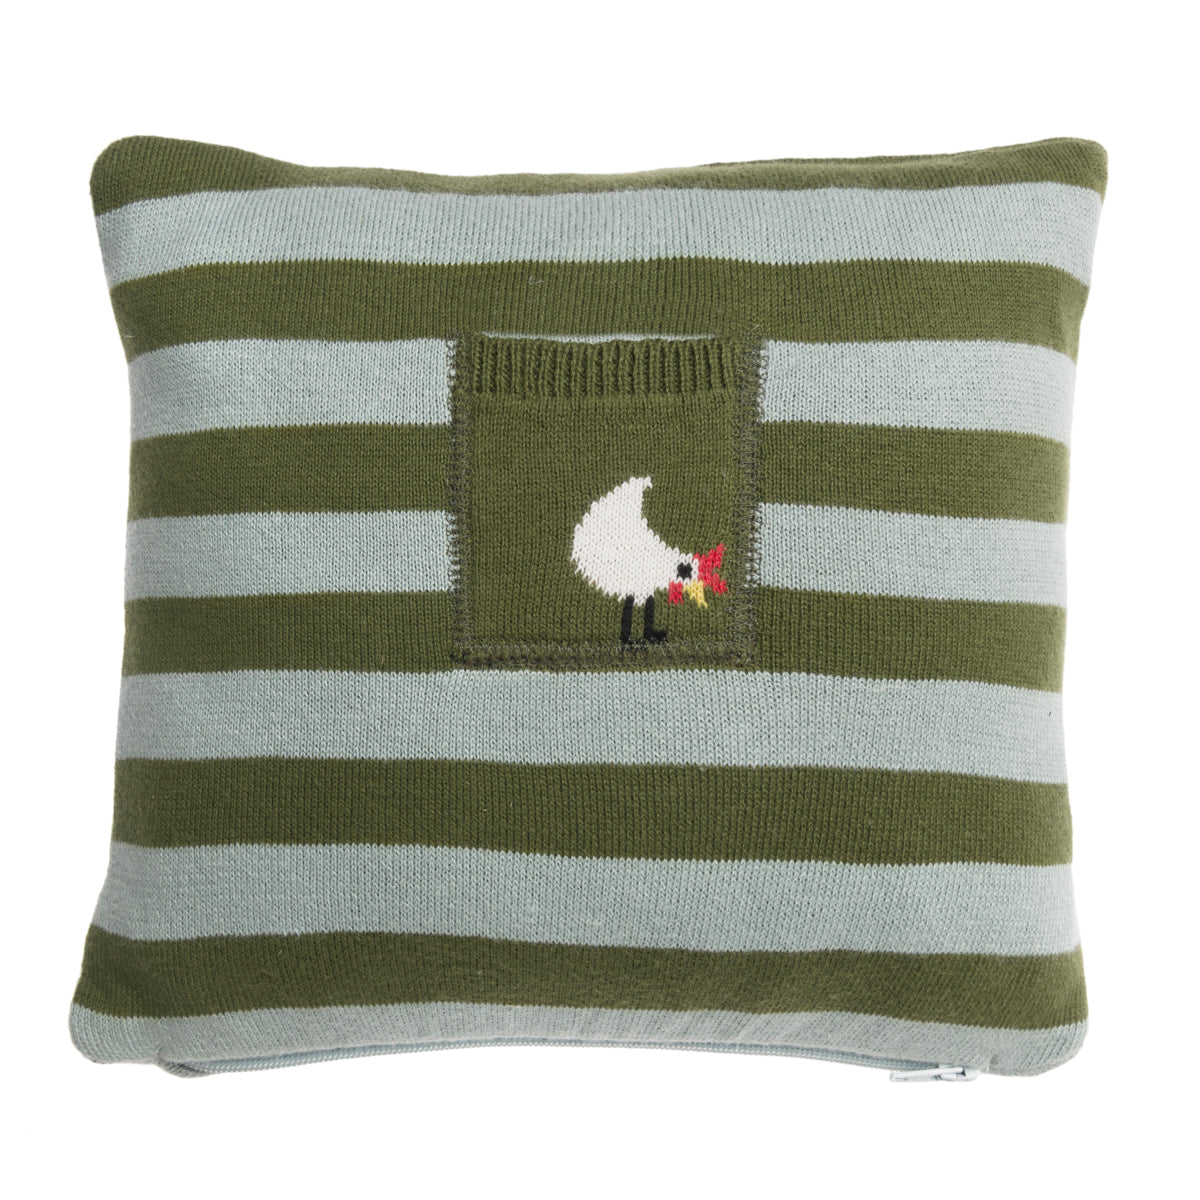 On The Farm Kid's Cushion by Sophie Allport